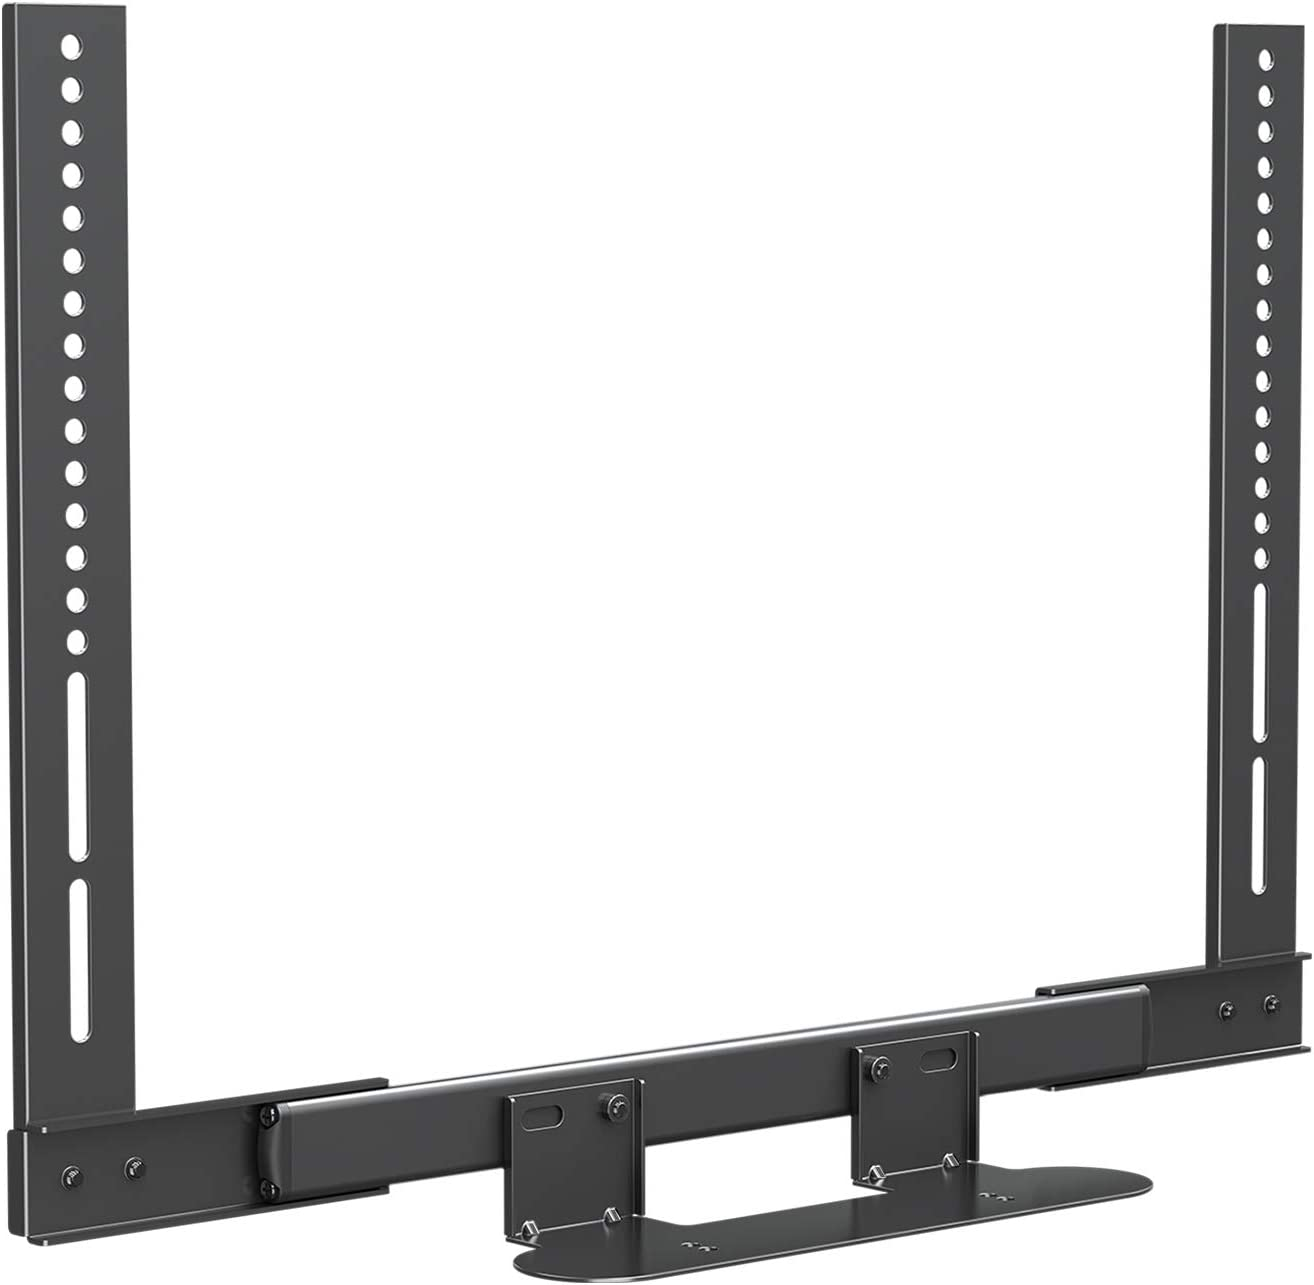 Mounting Dream Soundbar Mount with Easy Access Design for SONOS Beam, SoundBar Bracket with Sliding Block Fits TV up to VESA 600x400mm, Compatible with The Beam Constructed of Duty Aluminum Profile